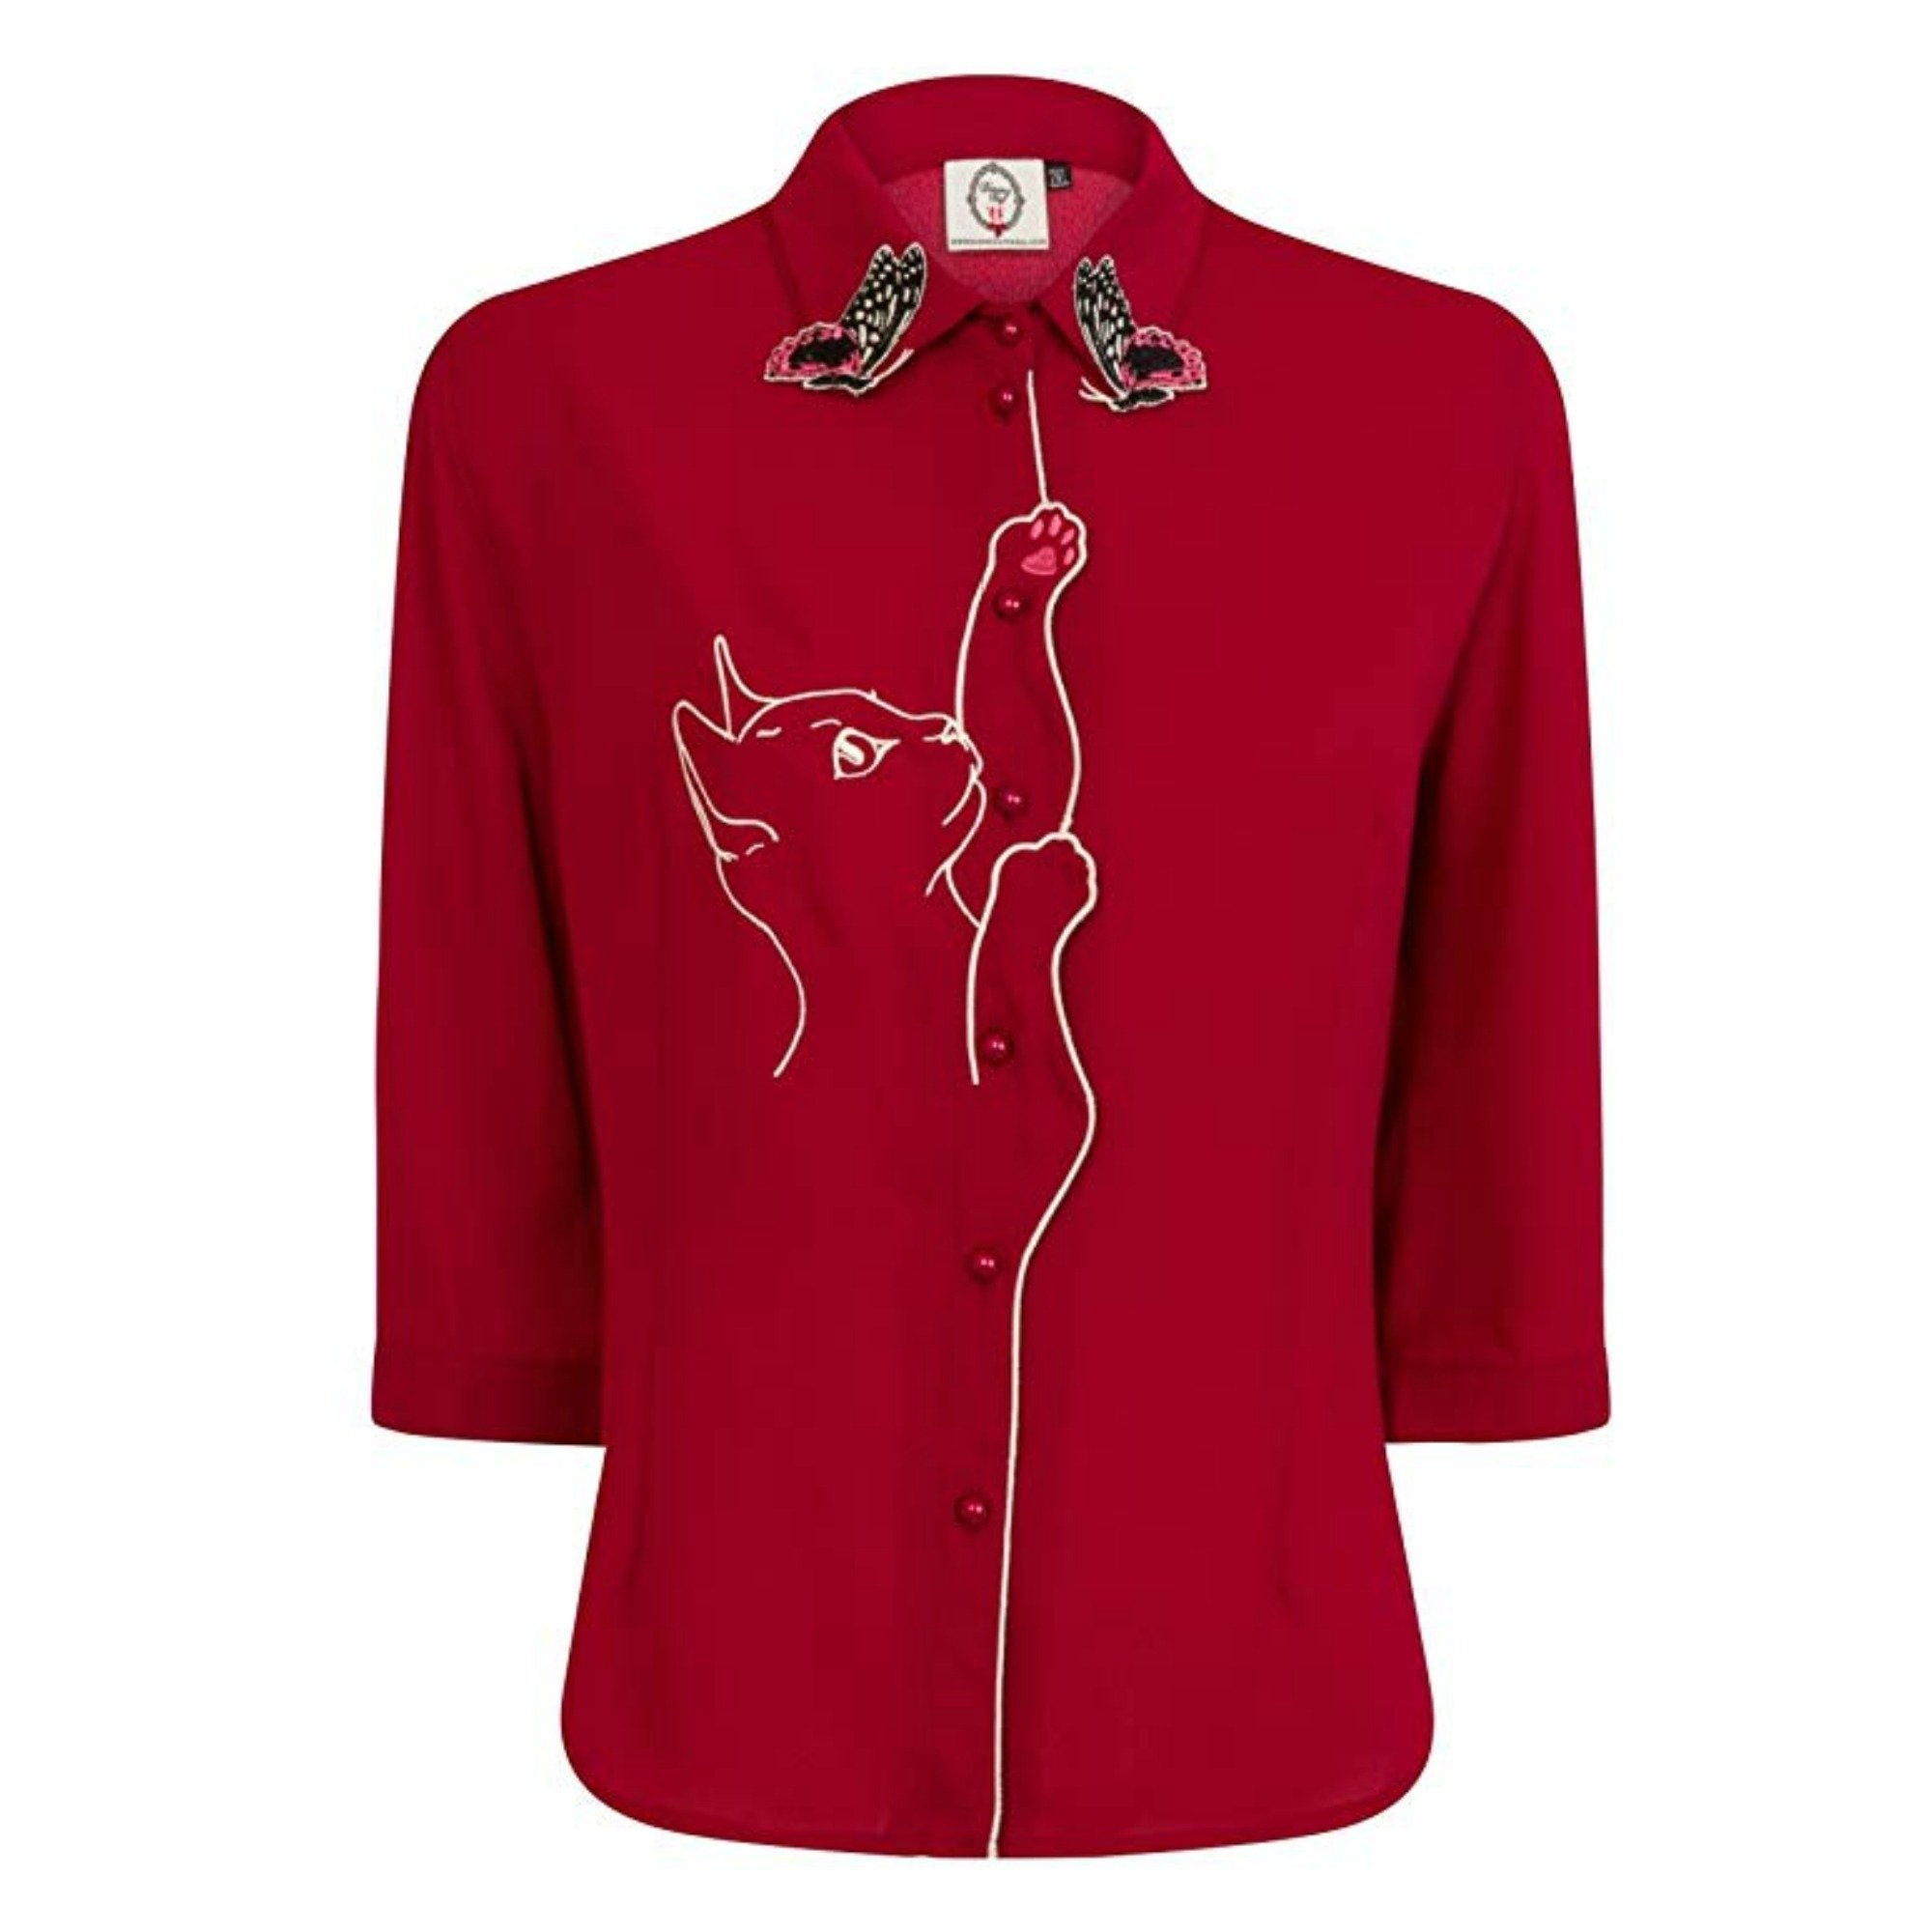 Playful Kitty Cat Blouse by Banned Apparel in red - Minimum Mouse